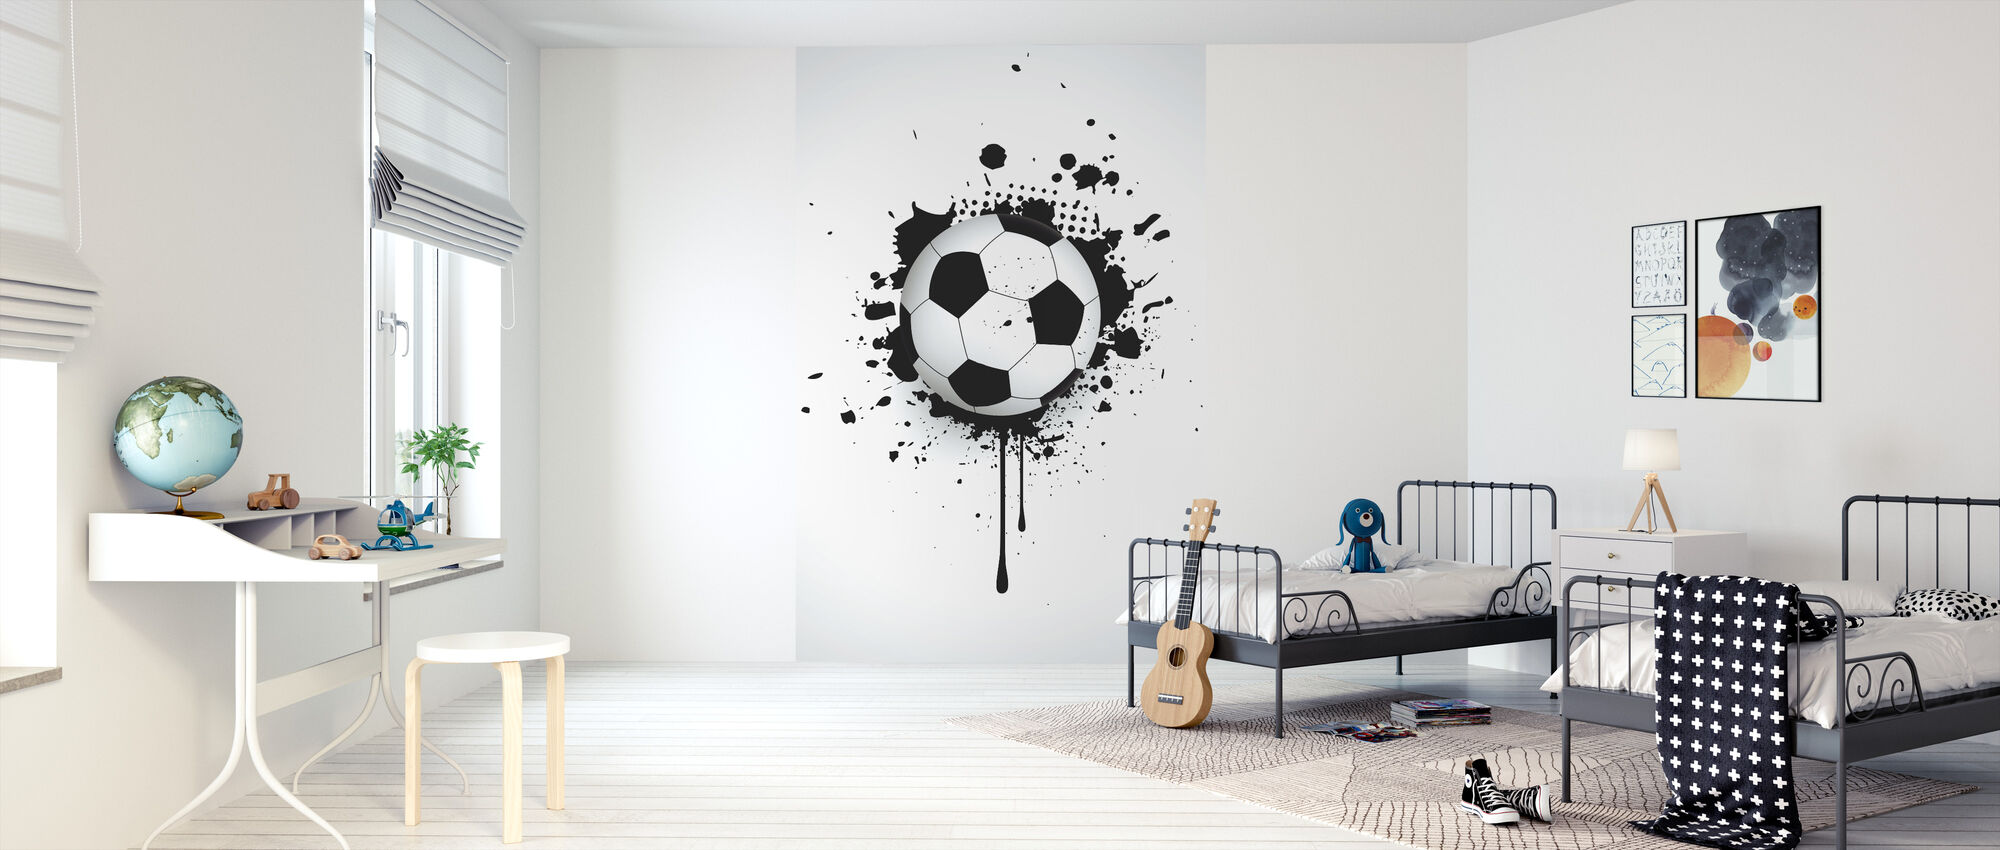 Ball Through Wall - Wallpaper - Kids Room